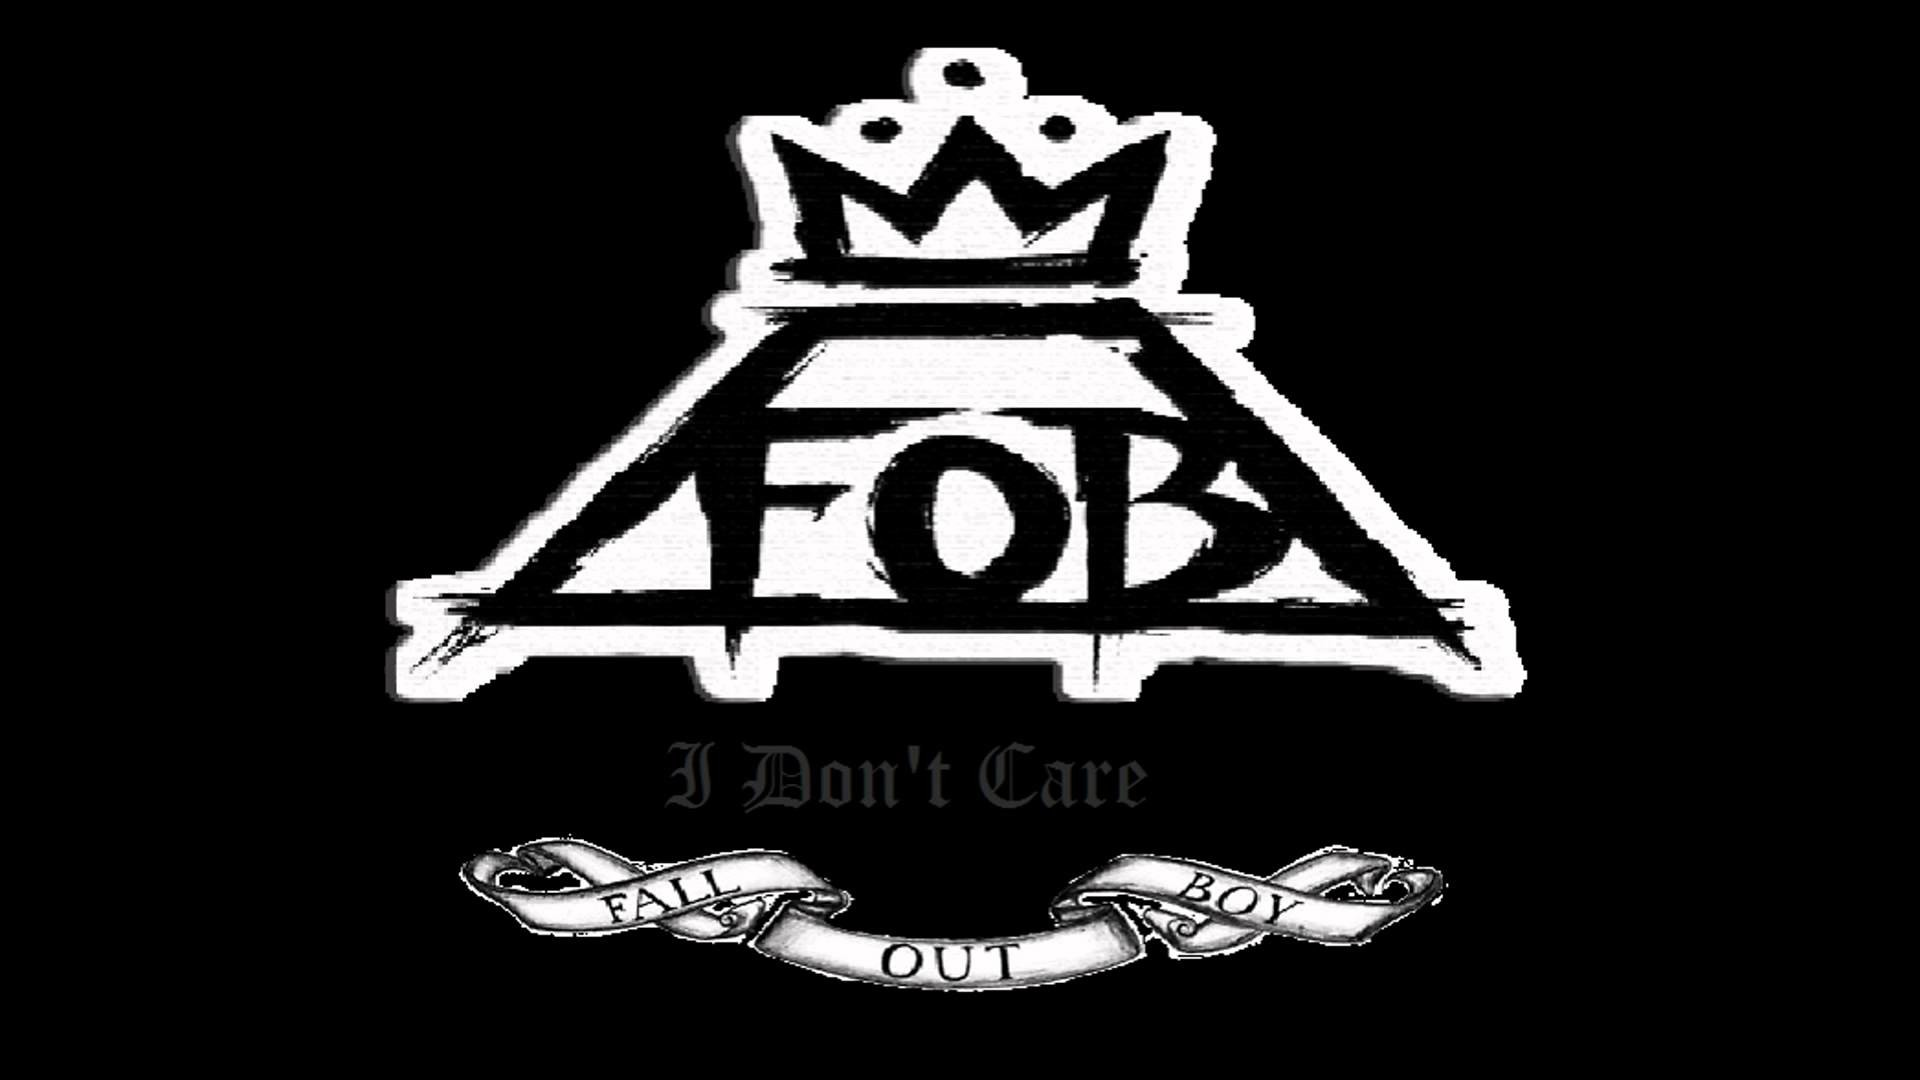 Fall Out Boy Wallpaper Lyrics Fall Out Boy Logo Wallpaper 77 Images